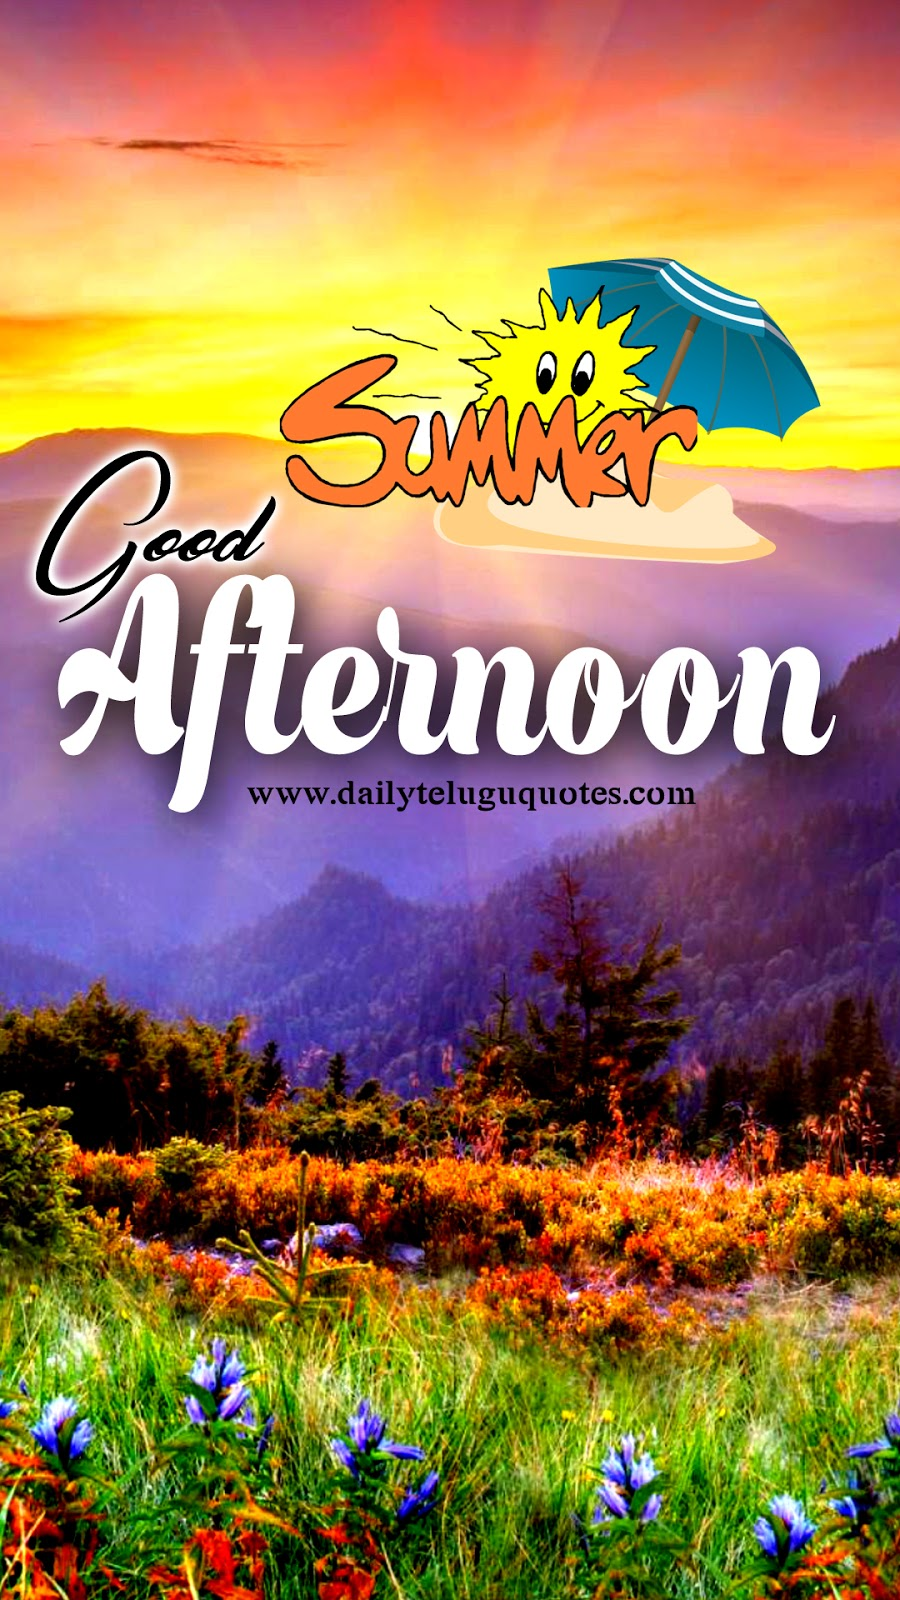 Best Good Afternoon Android Mobile Wallpapers Free Download